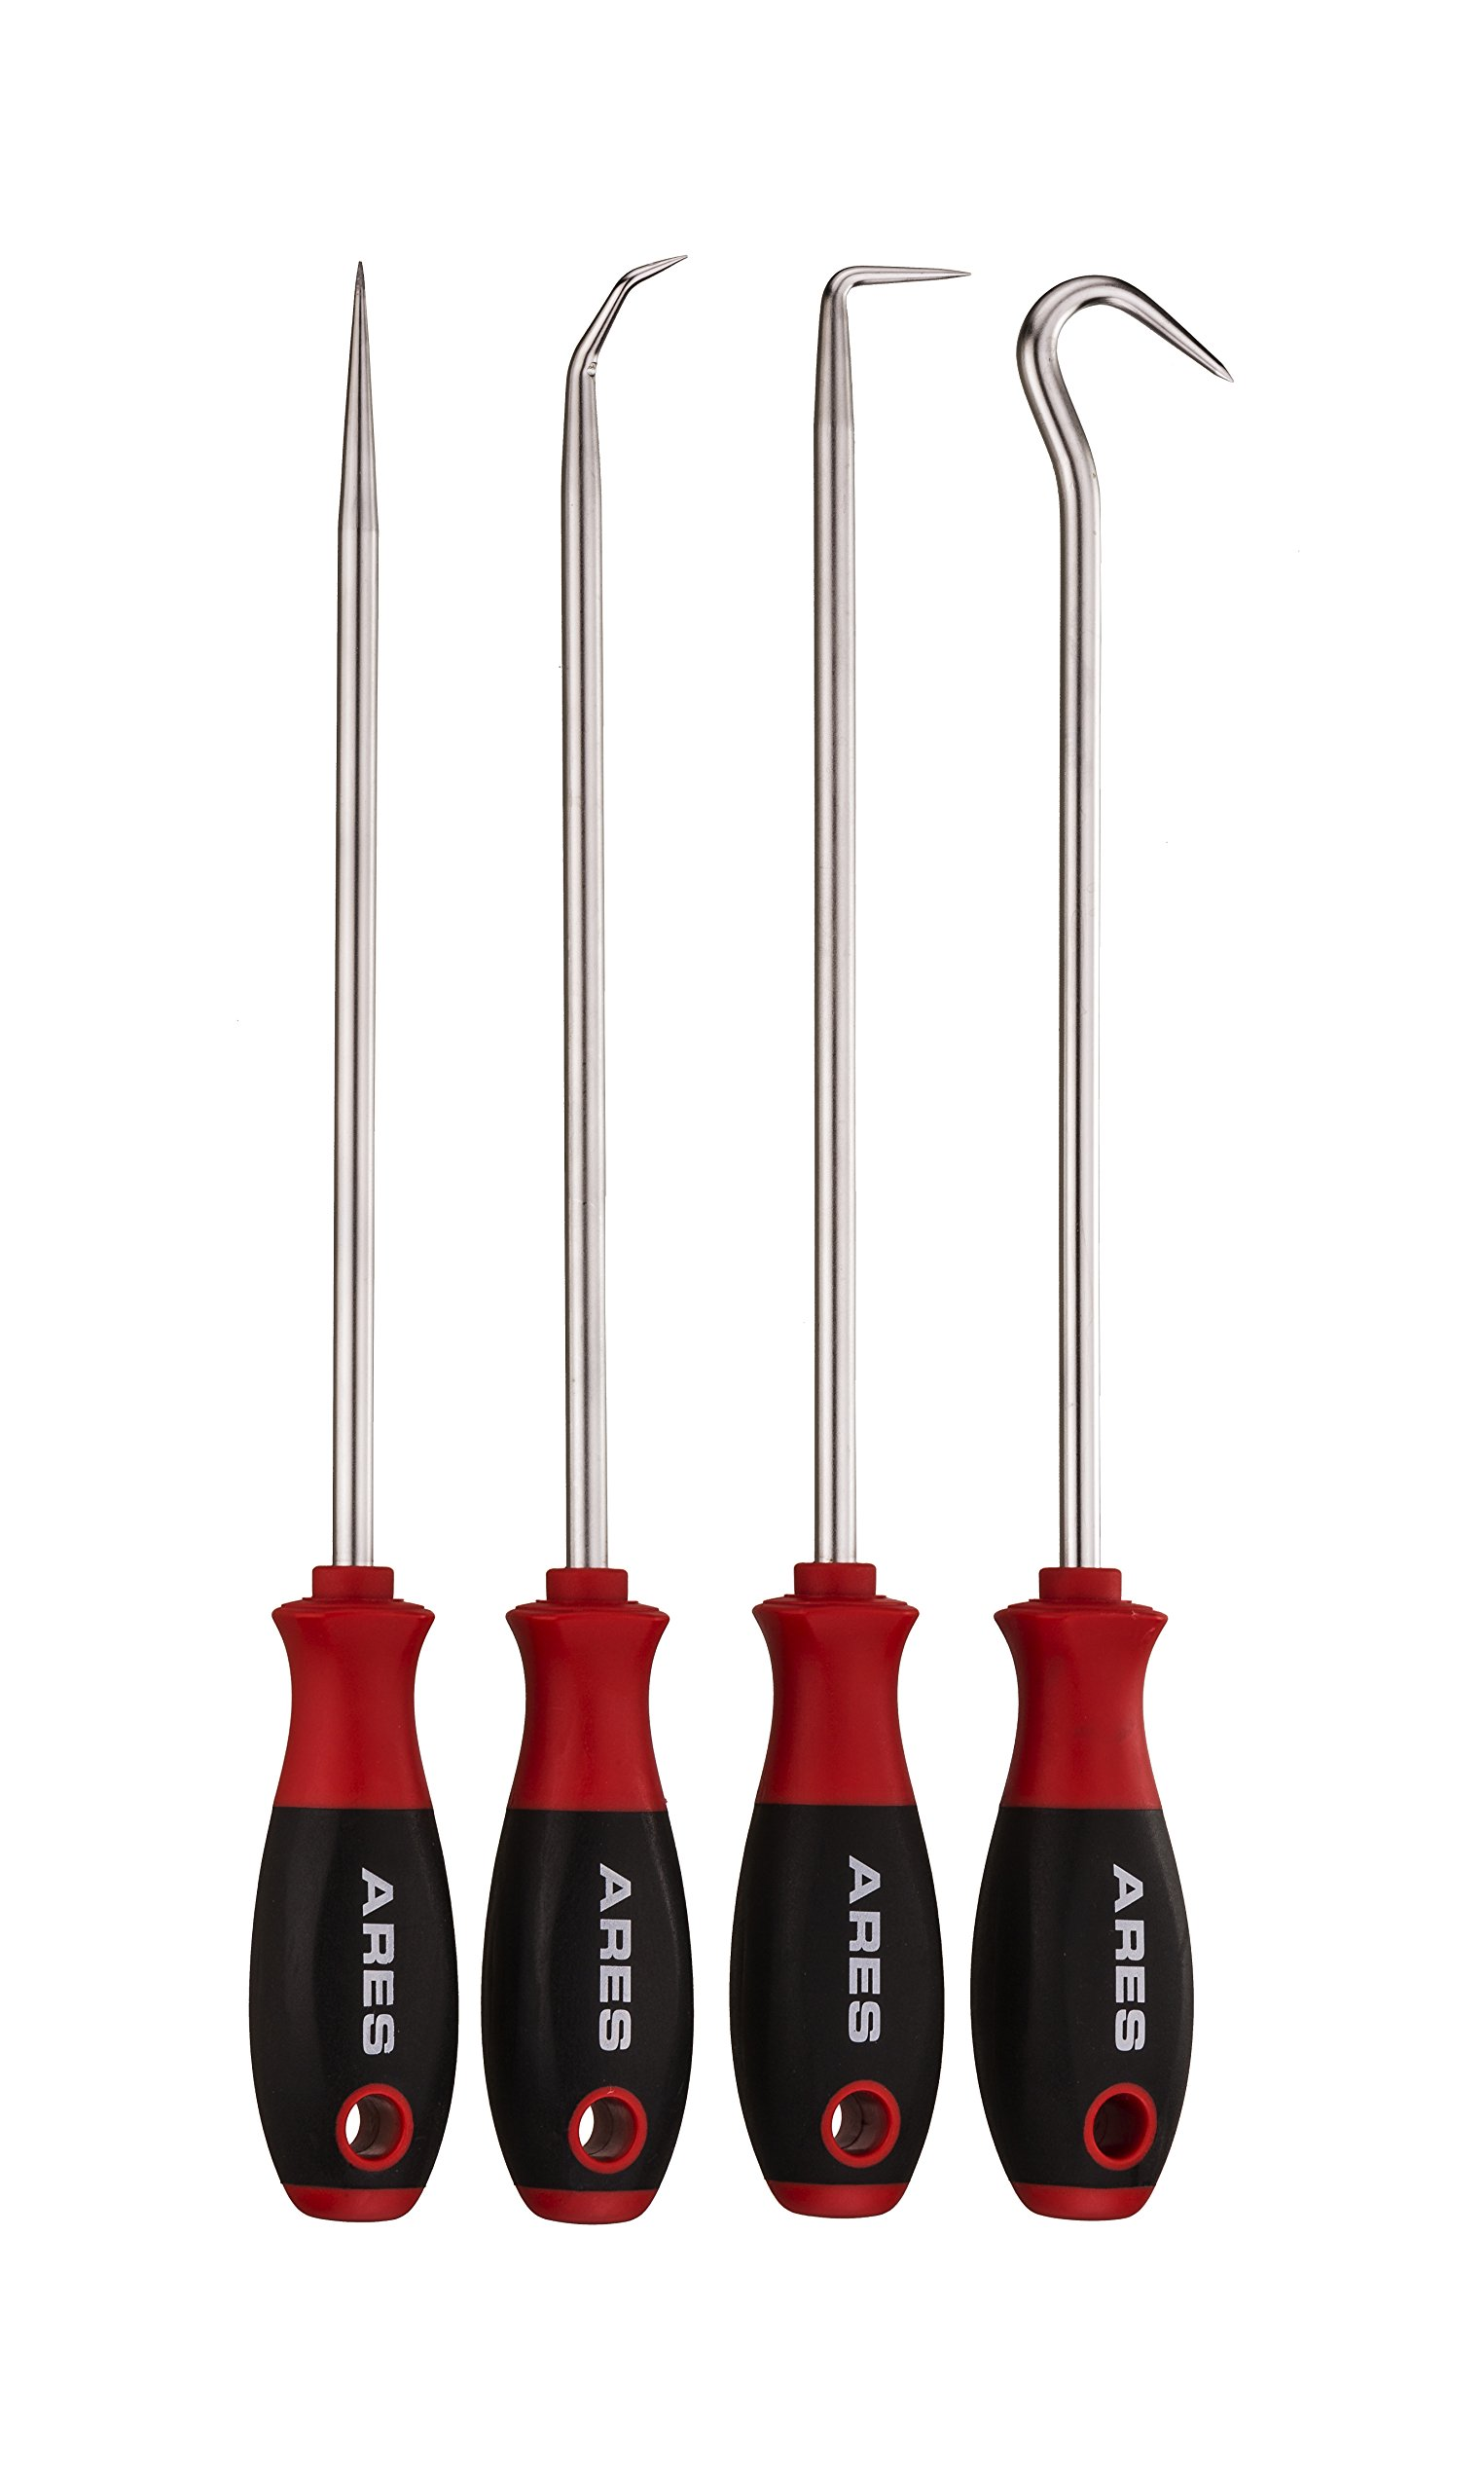 ARES 70246 | 4-Piece Hook and Pick Set | Includes a Large Straight Pick, 90 Degree Pick, Combination Pick and a Hook Pick | Chrome Vanadium Steel Shafts | Easily Remove Hoses, Gaskets and More